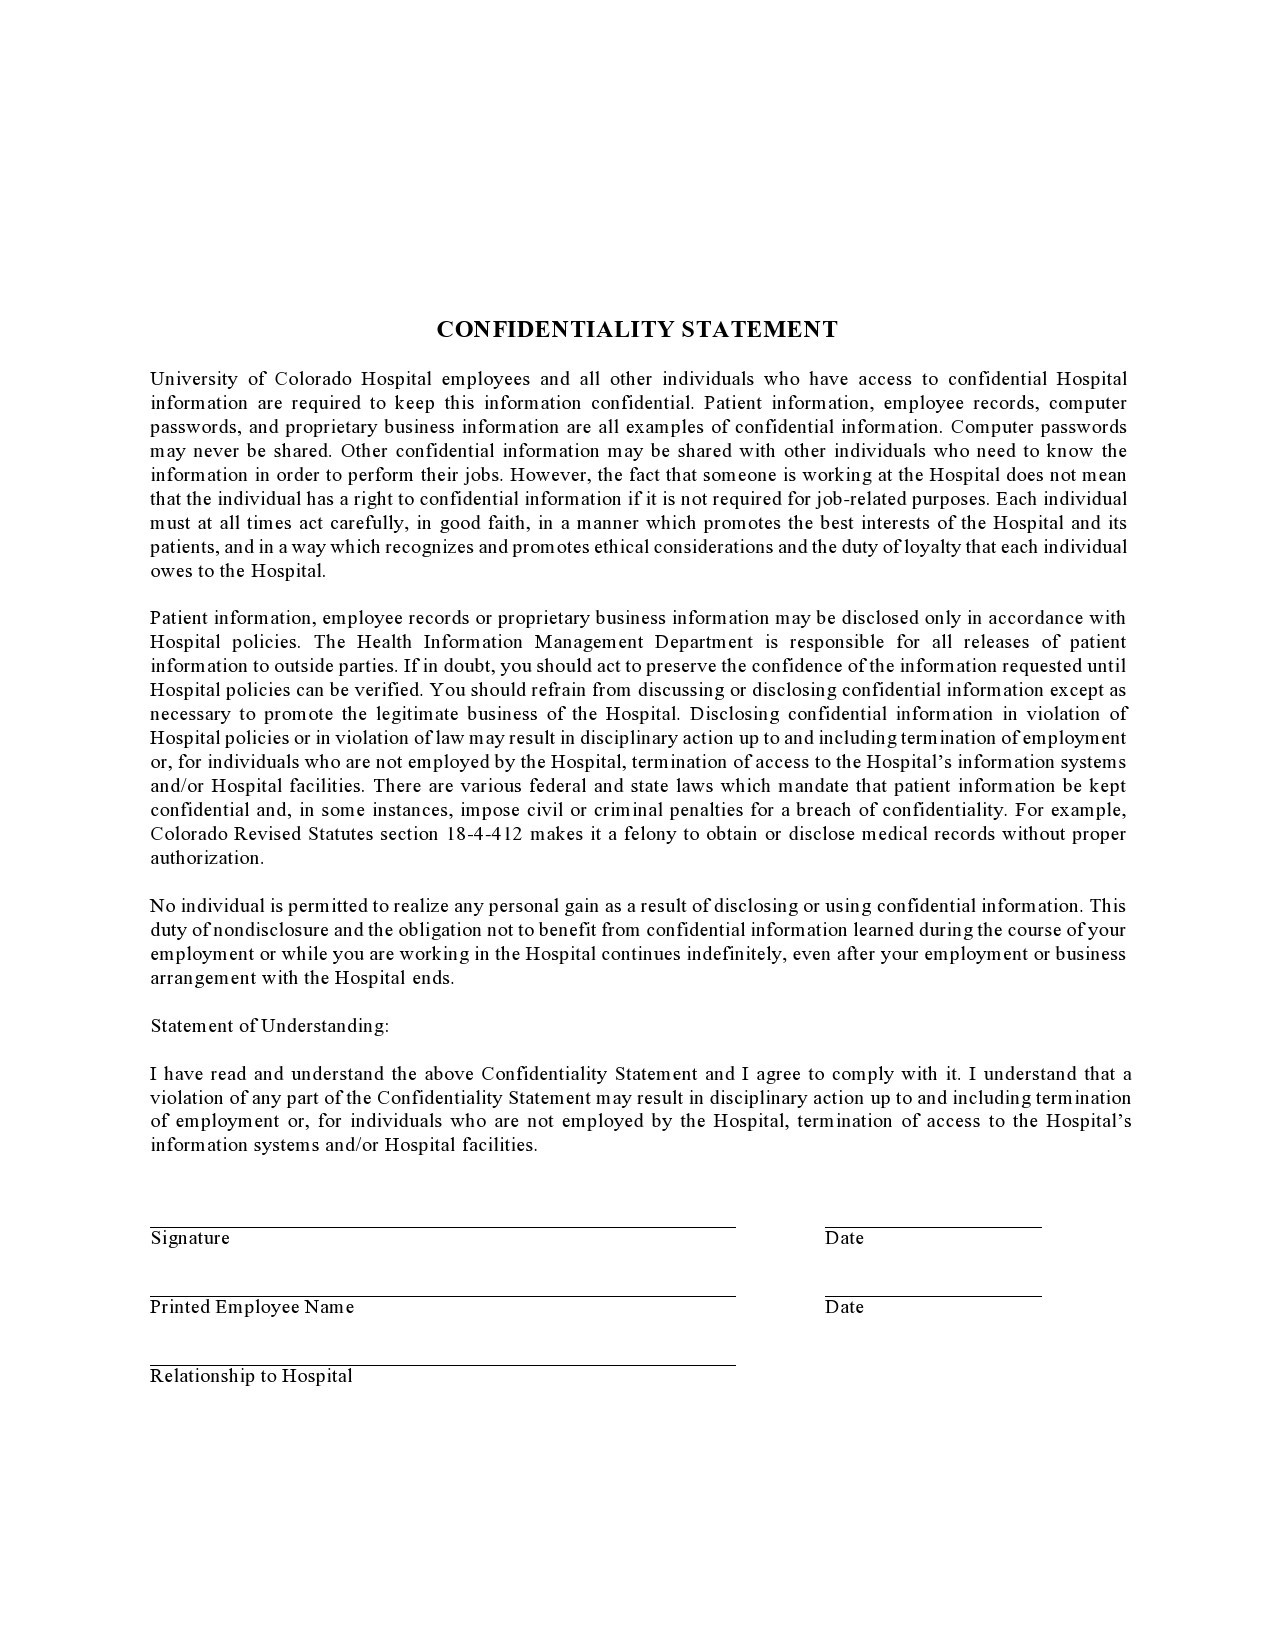 Free confidentiality statement 26